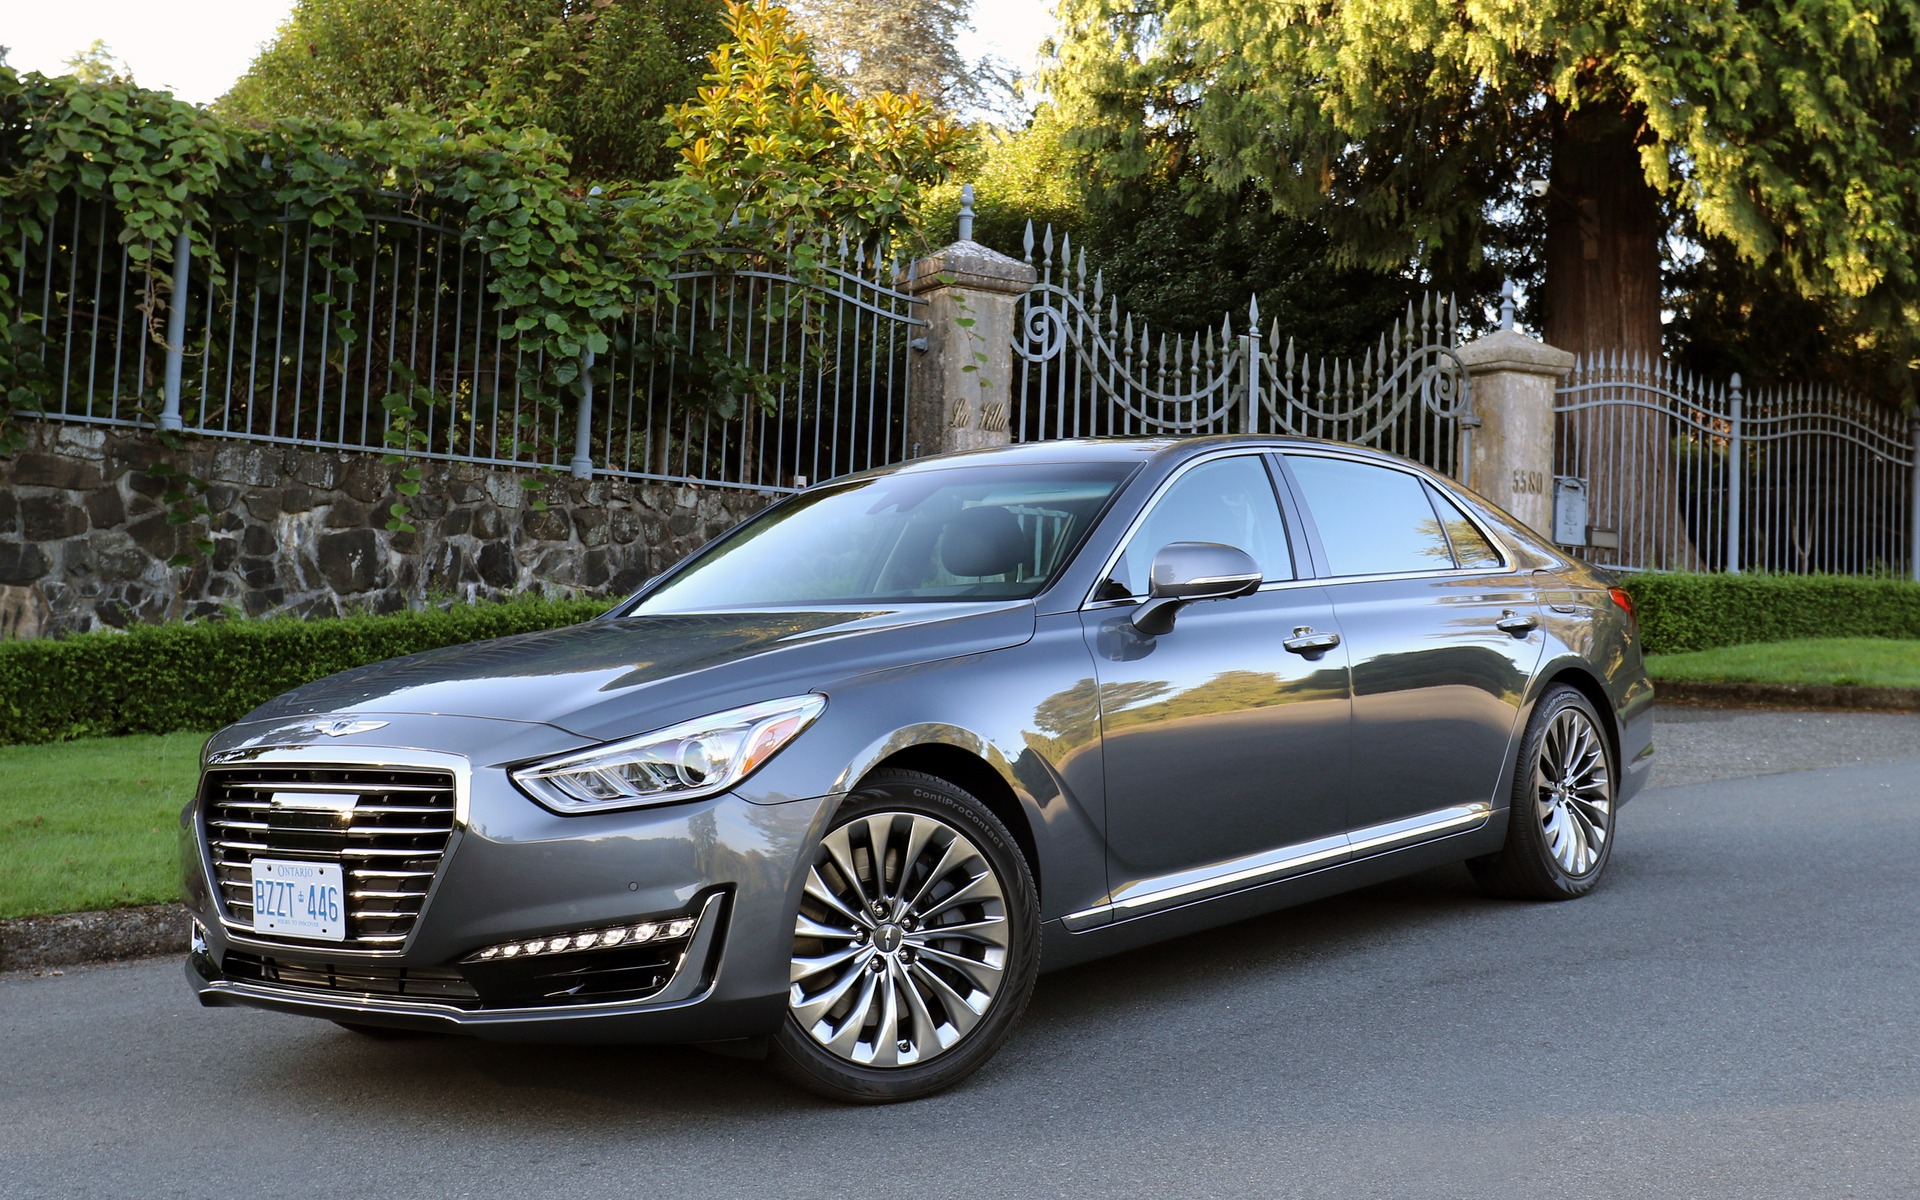 genesis g90 2017 un pas historique pour hyundai guide auto. Black Bedroom Furniture Sets. Home Design Ideas